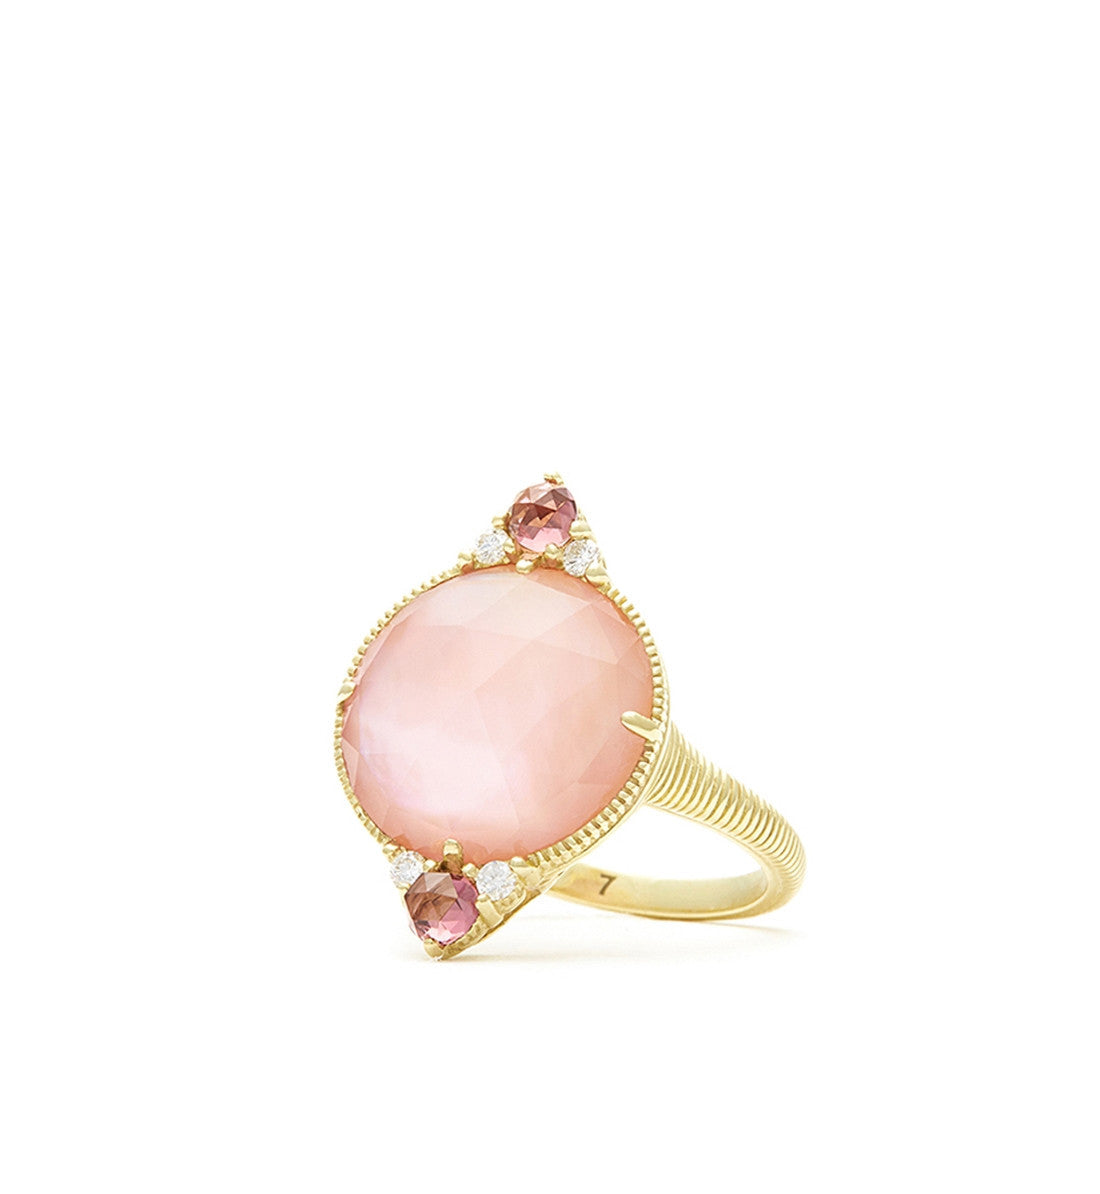 Allure Pink Mother of Pearl Small Cabochon Ring - Judith Ripka -  Ring - Ora by D'Amore Jewelers